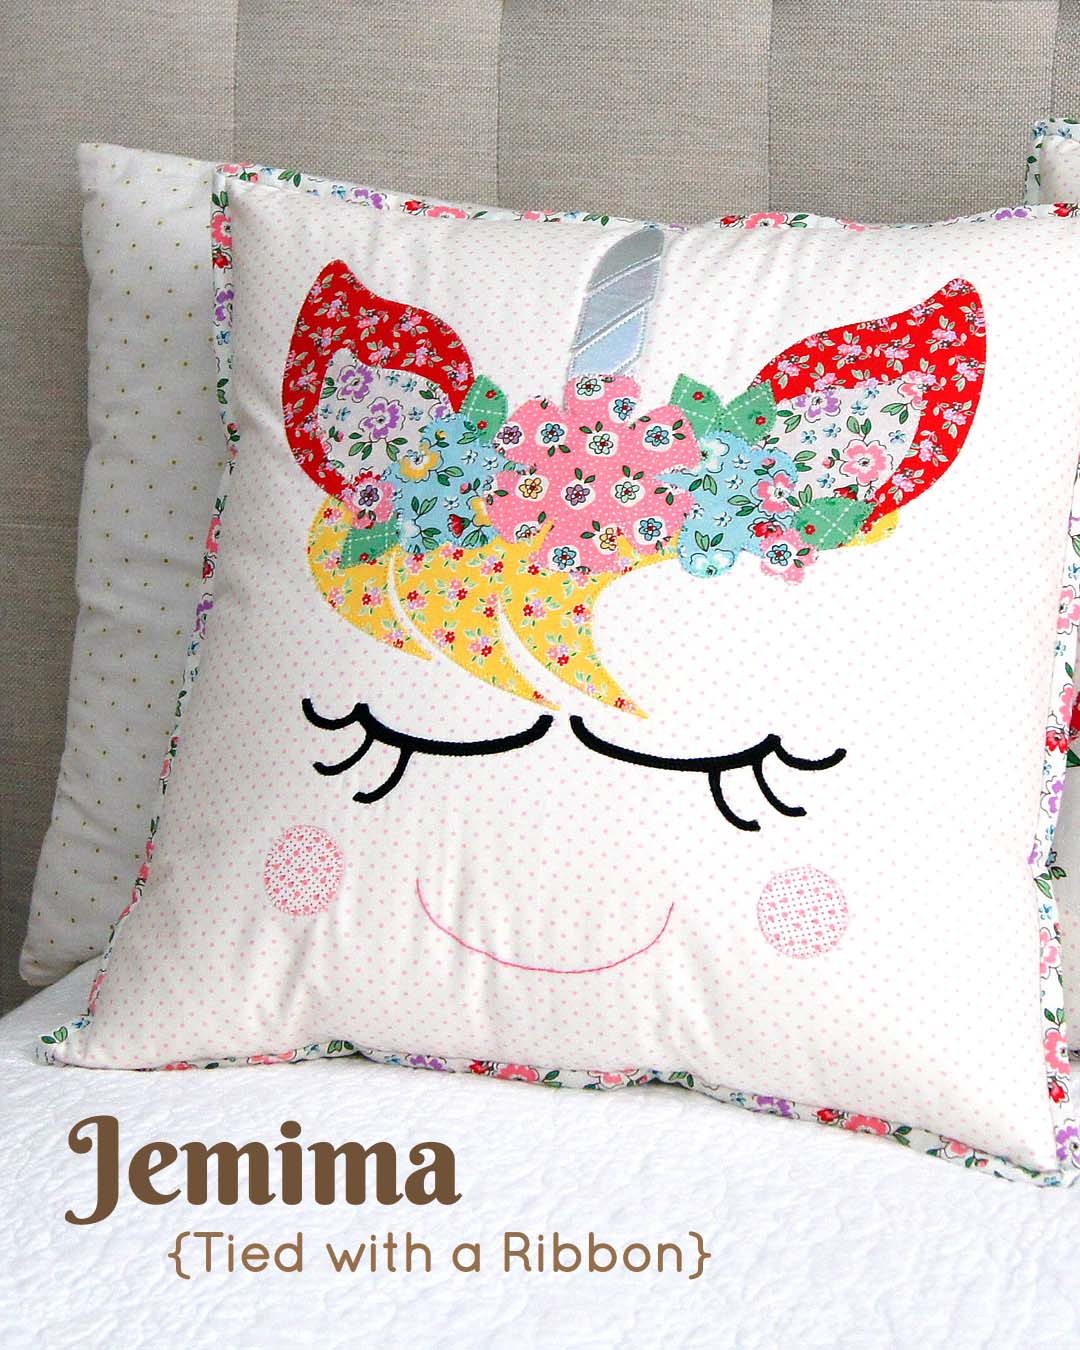 Mon Beau Jardin Blog Tour - Unicorn Dreams Pillow by Jemima Flendt of Tied with a Ribbon